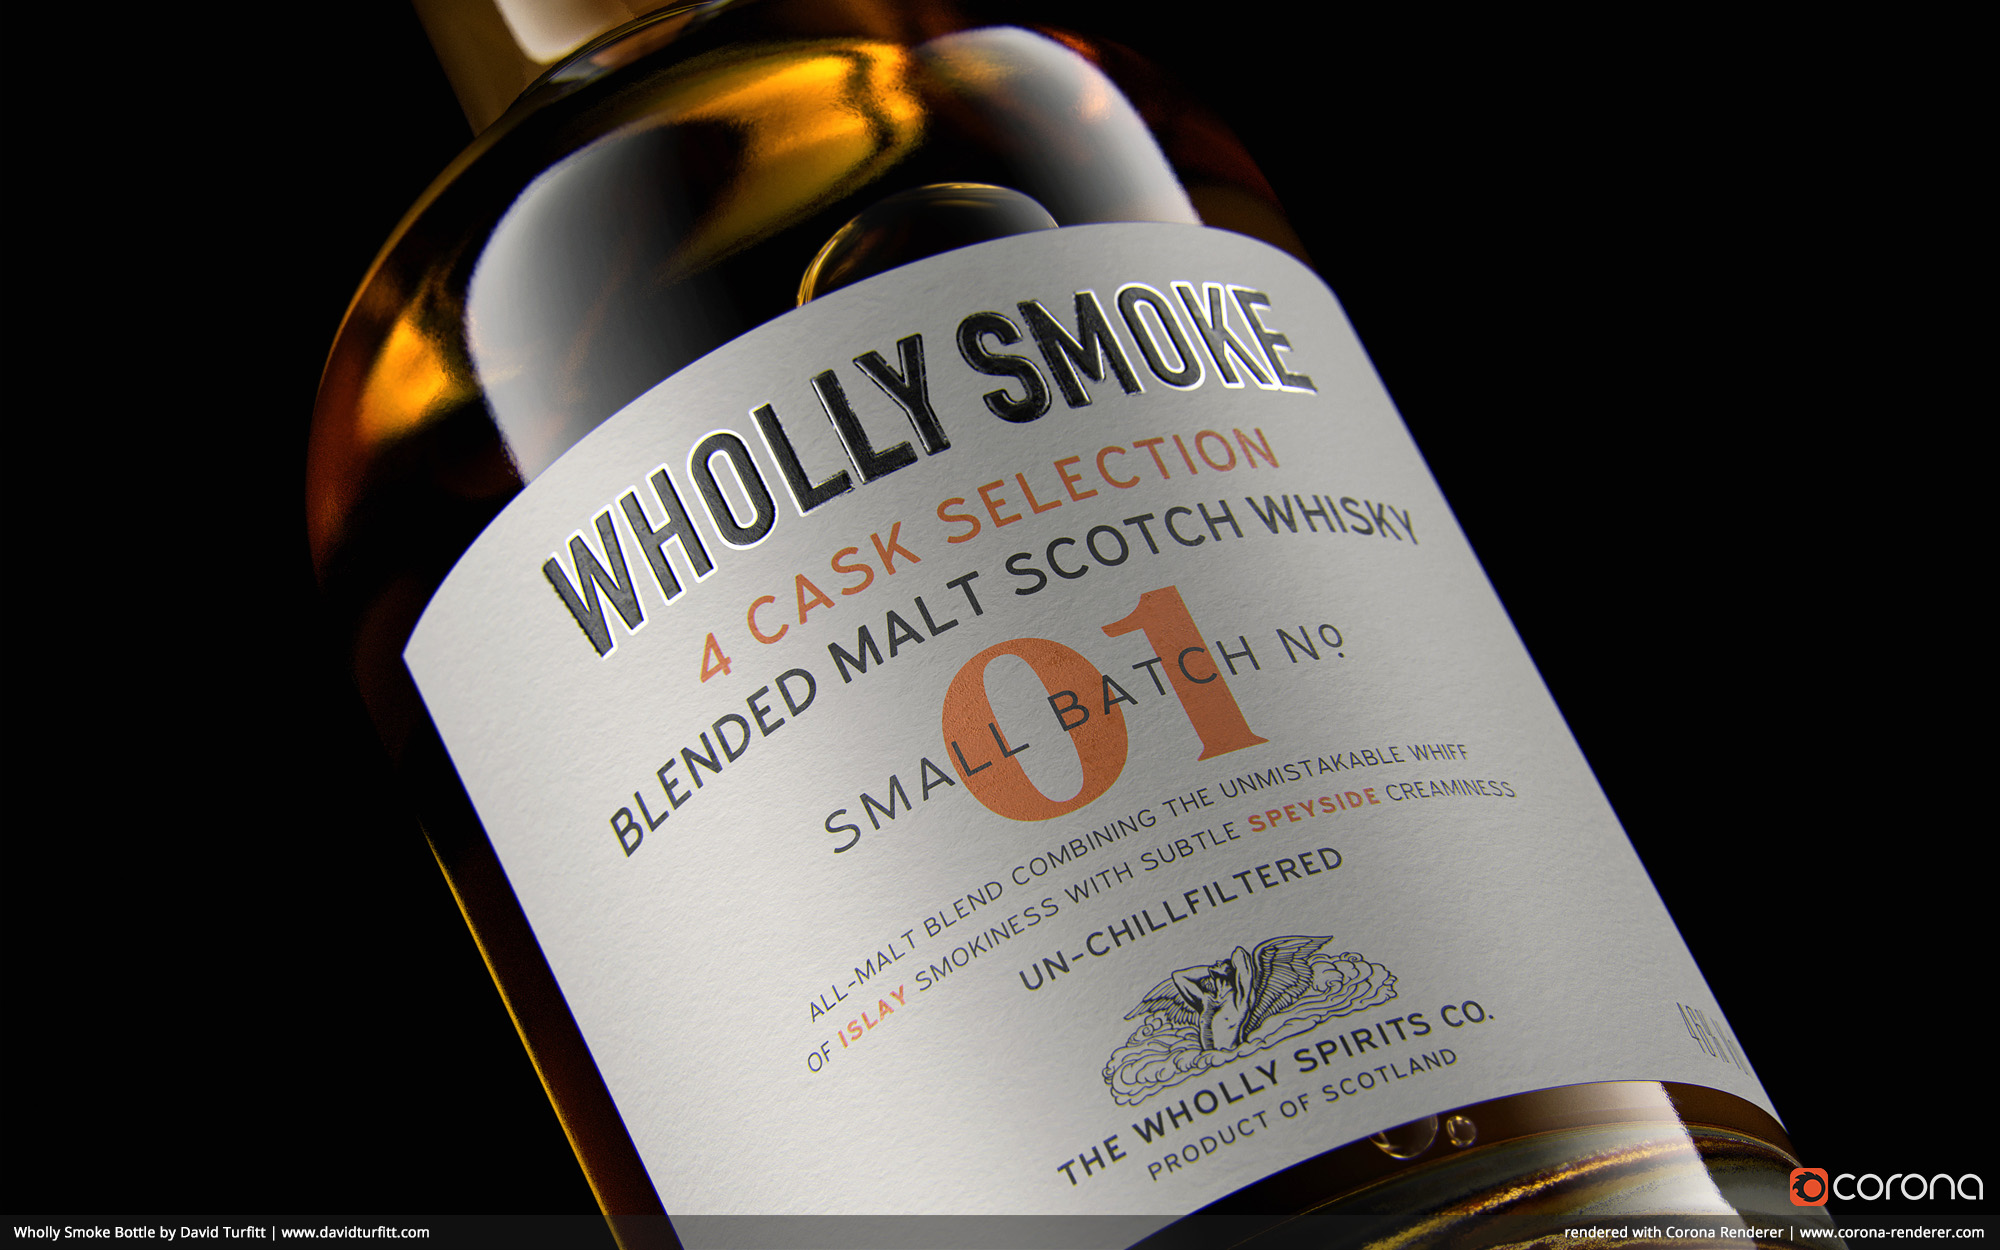 Wholly Smoke Bottle by David Turfitt